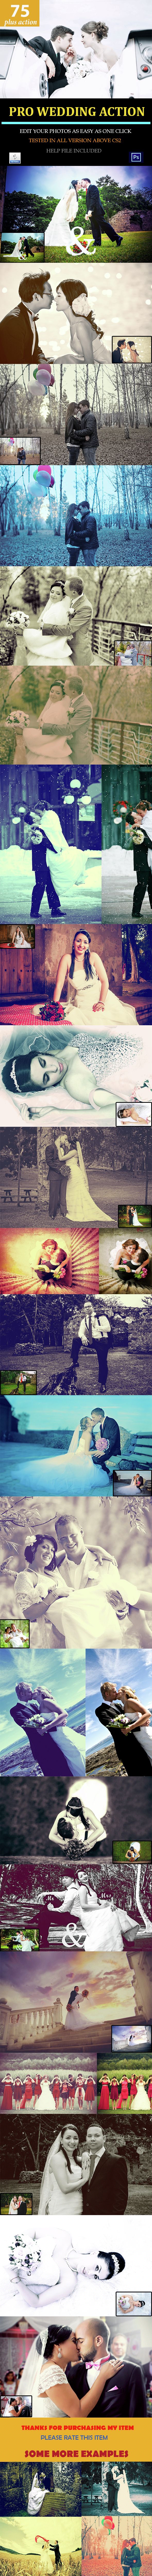 Pro Wedding Action Pack - Photo Effects Actions